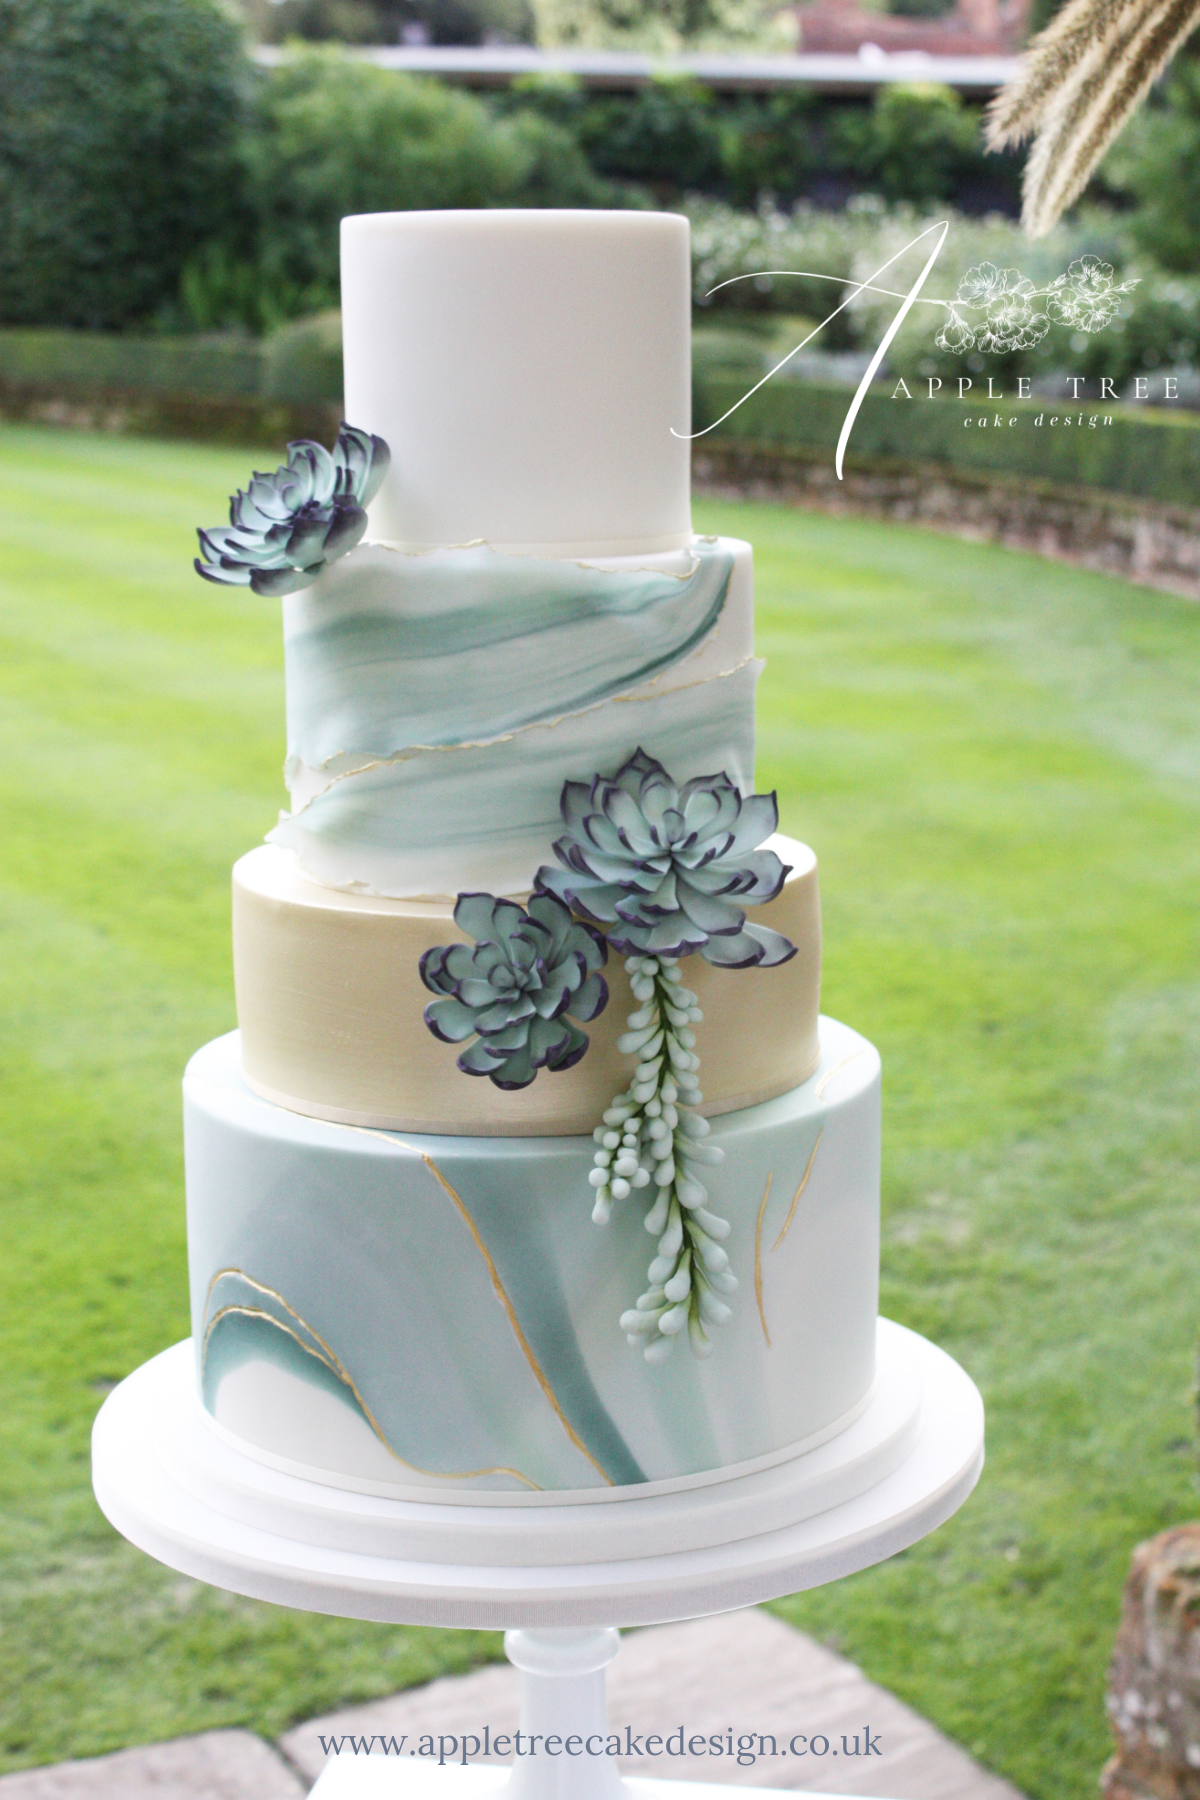 Jade A Contemporary Wedding Cake Decorated With Sugar Flower